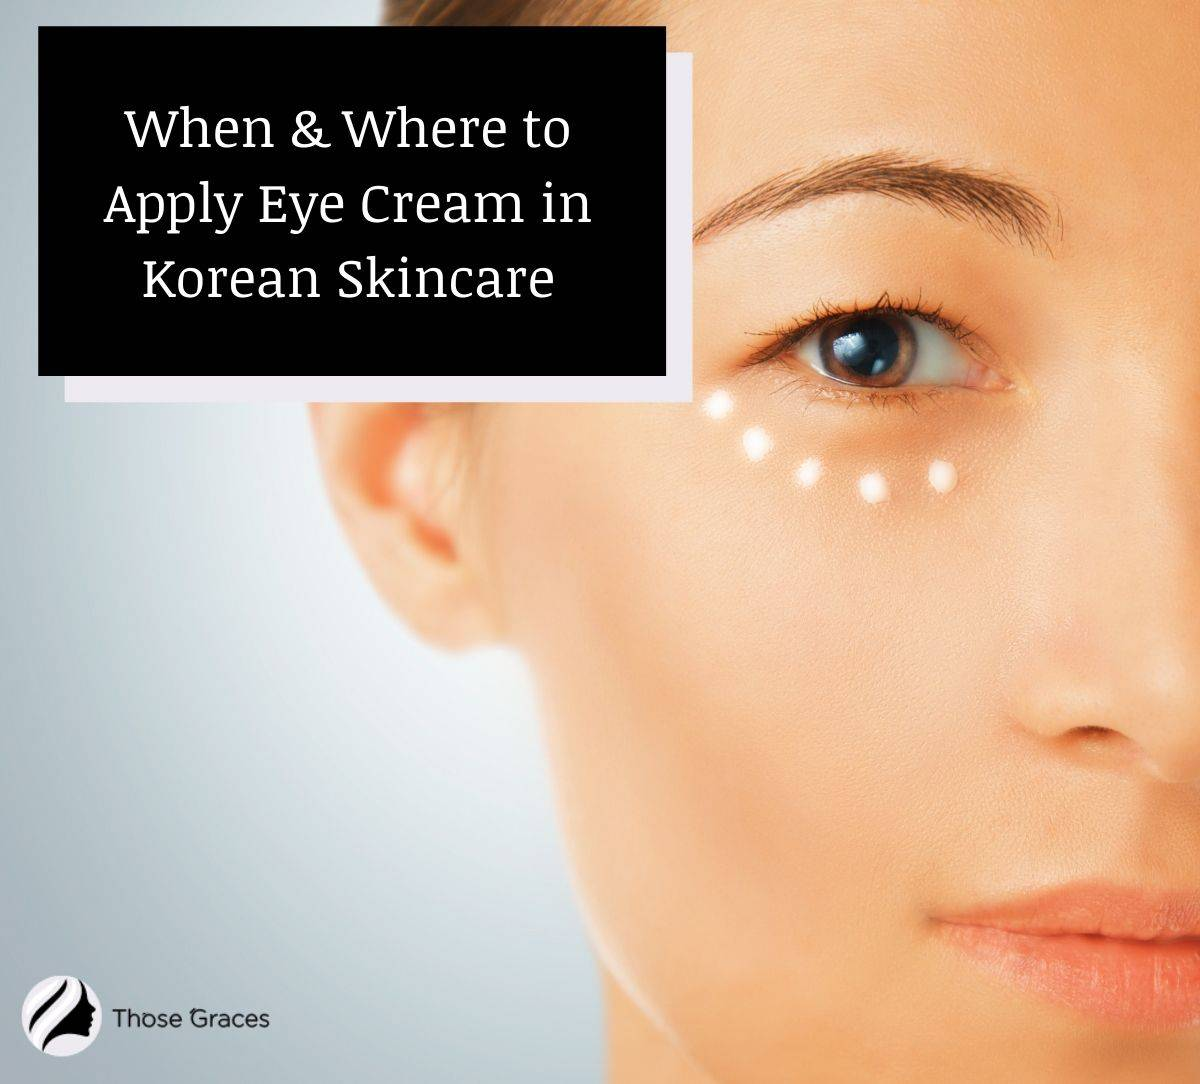 face of a lady showing where to apply eye cream Korean